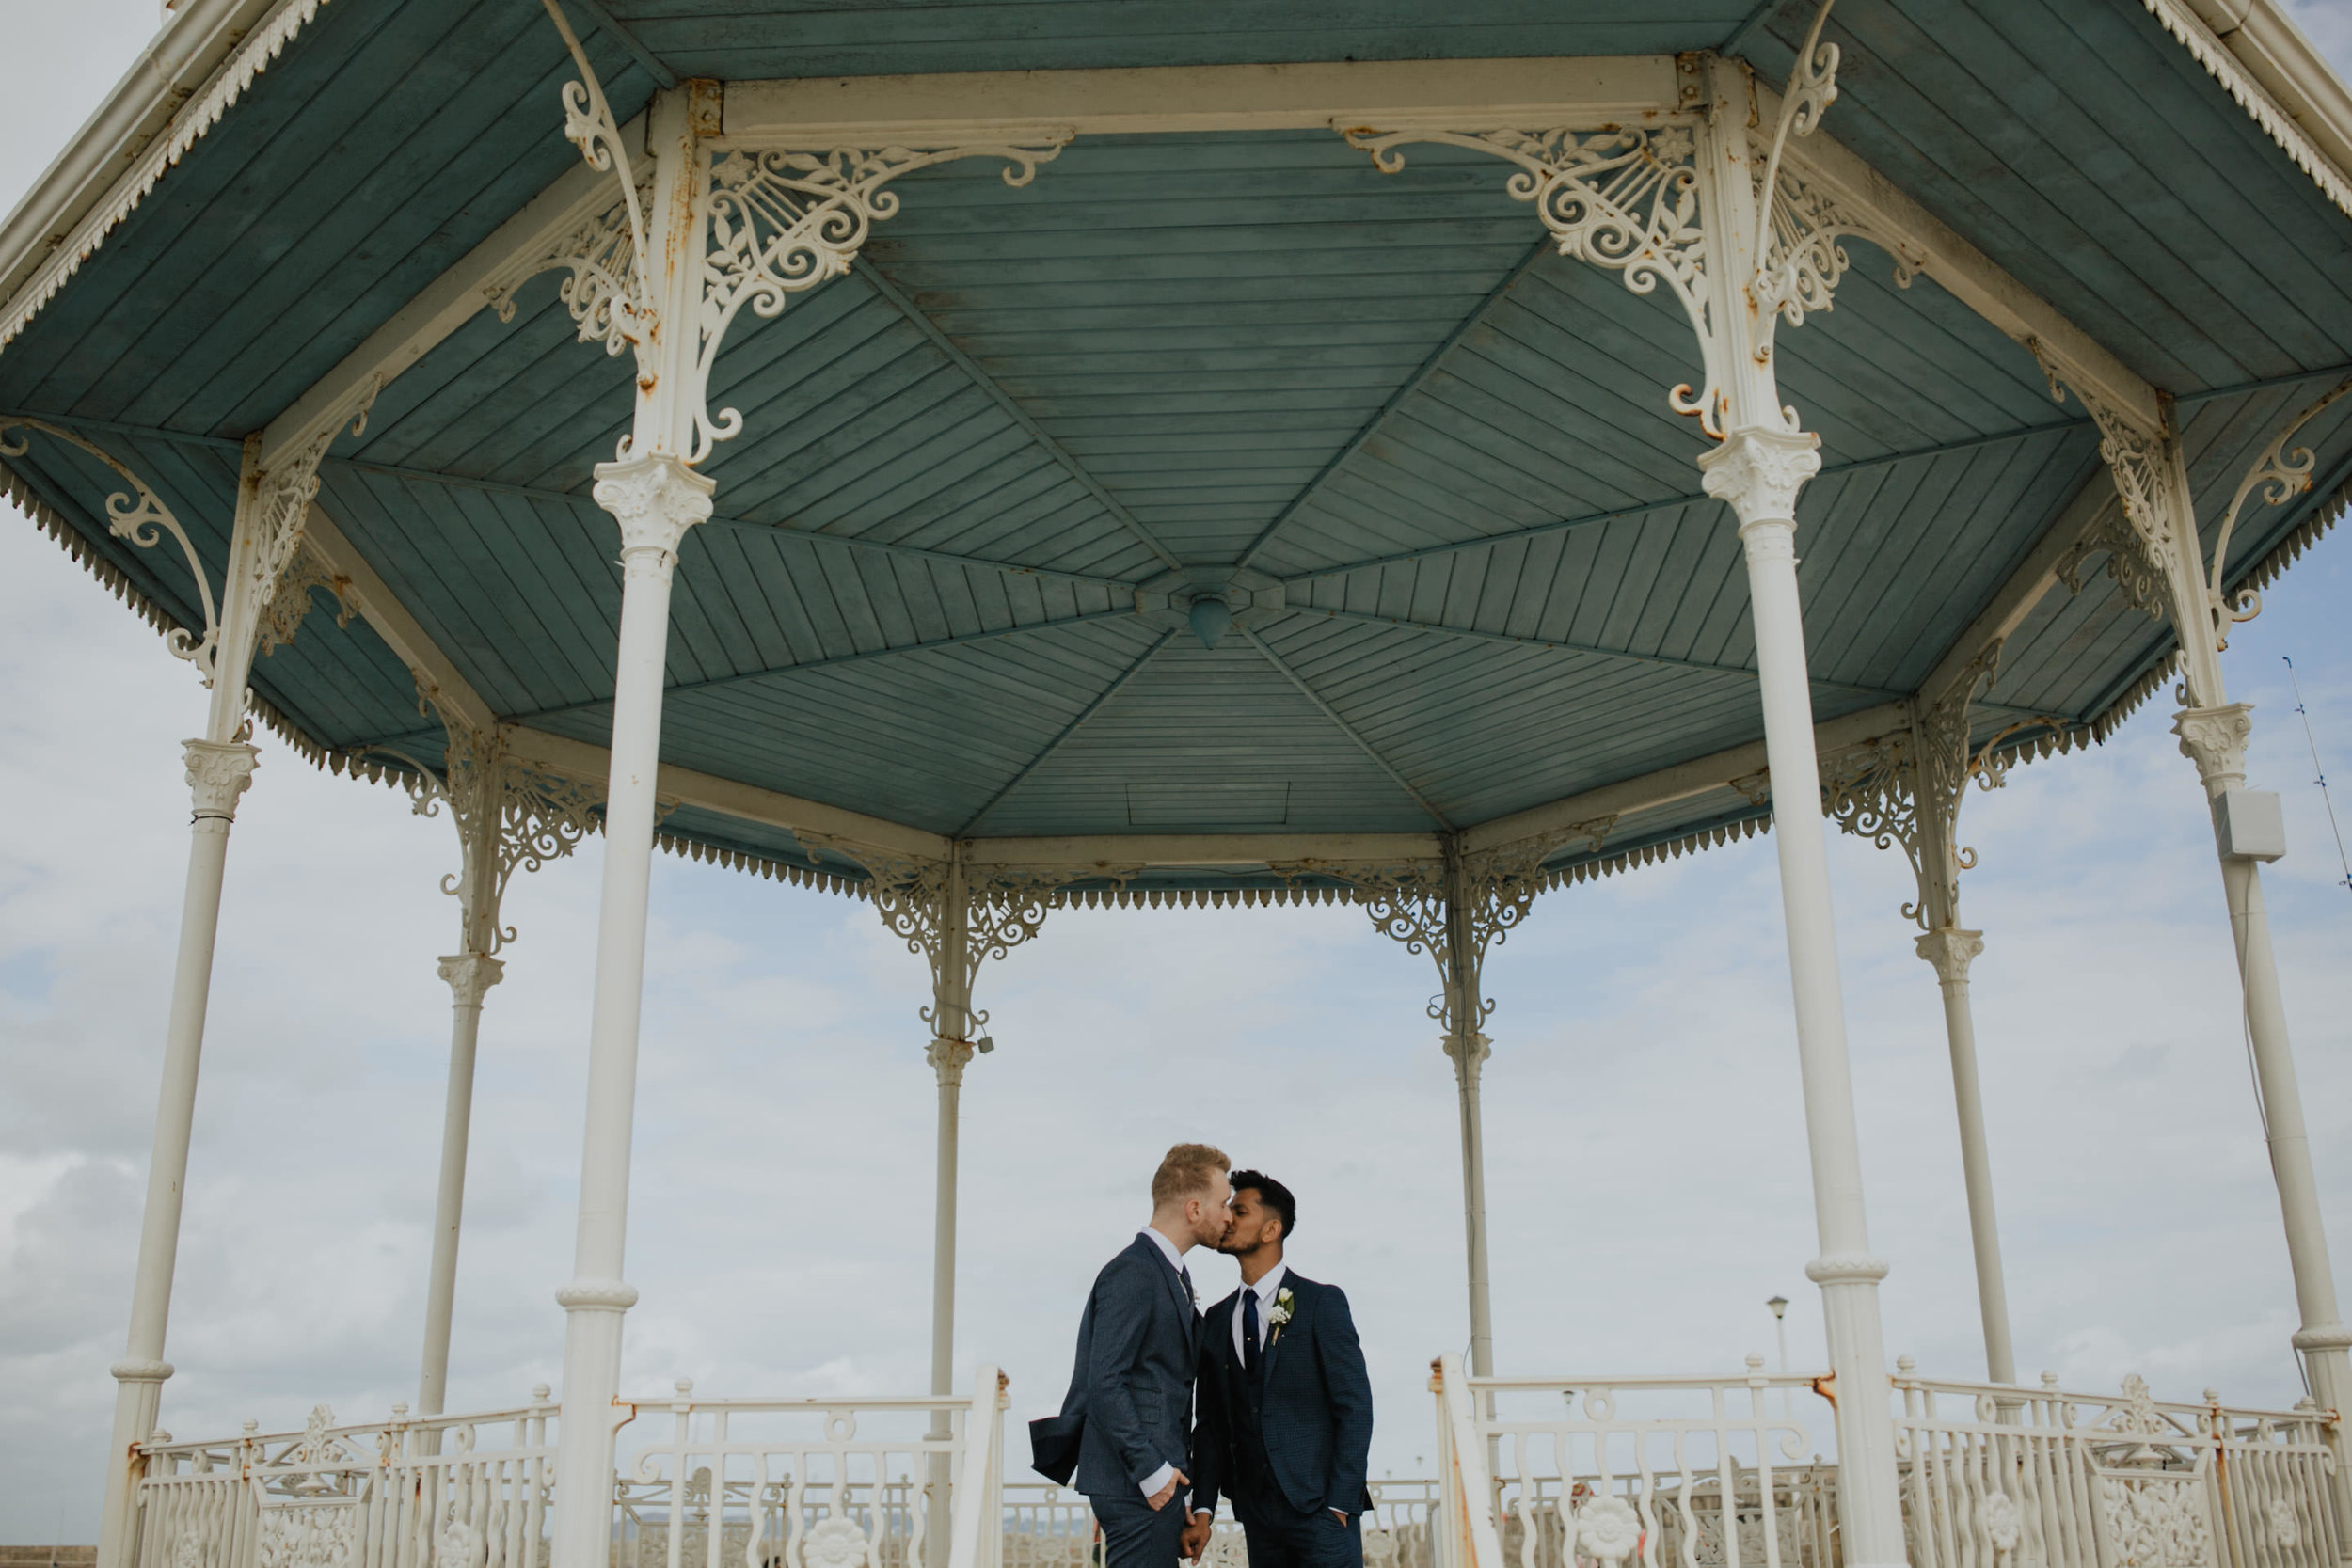 d&l_dunlaoghaire_wedding_photographer_livia_figueiredo_11.jpg